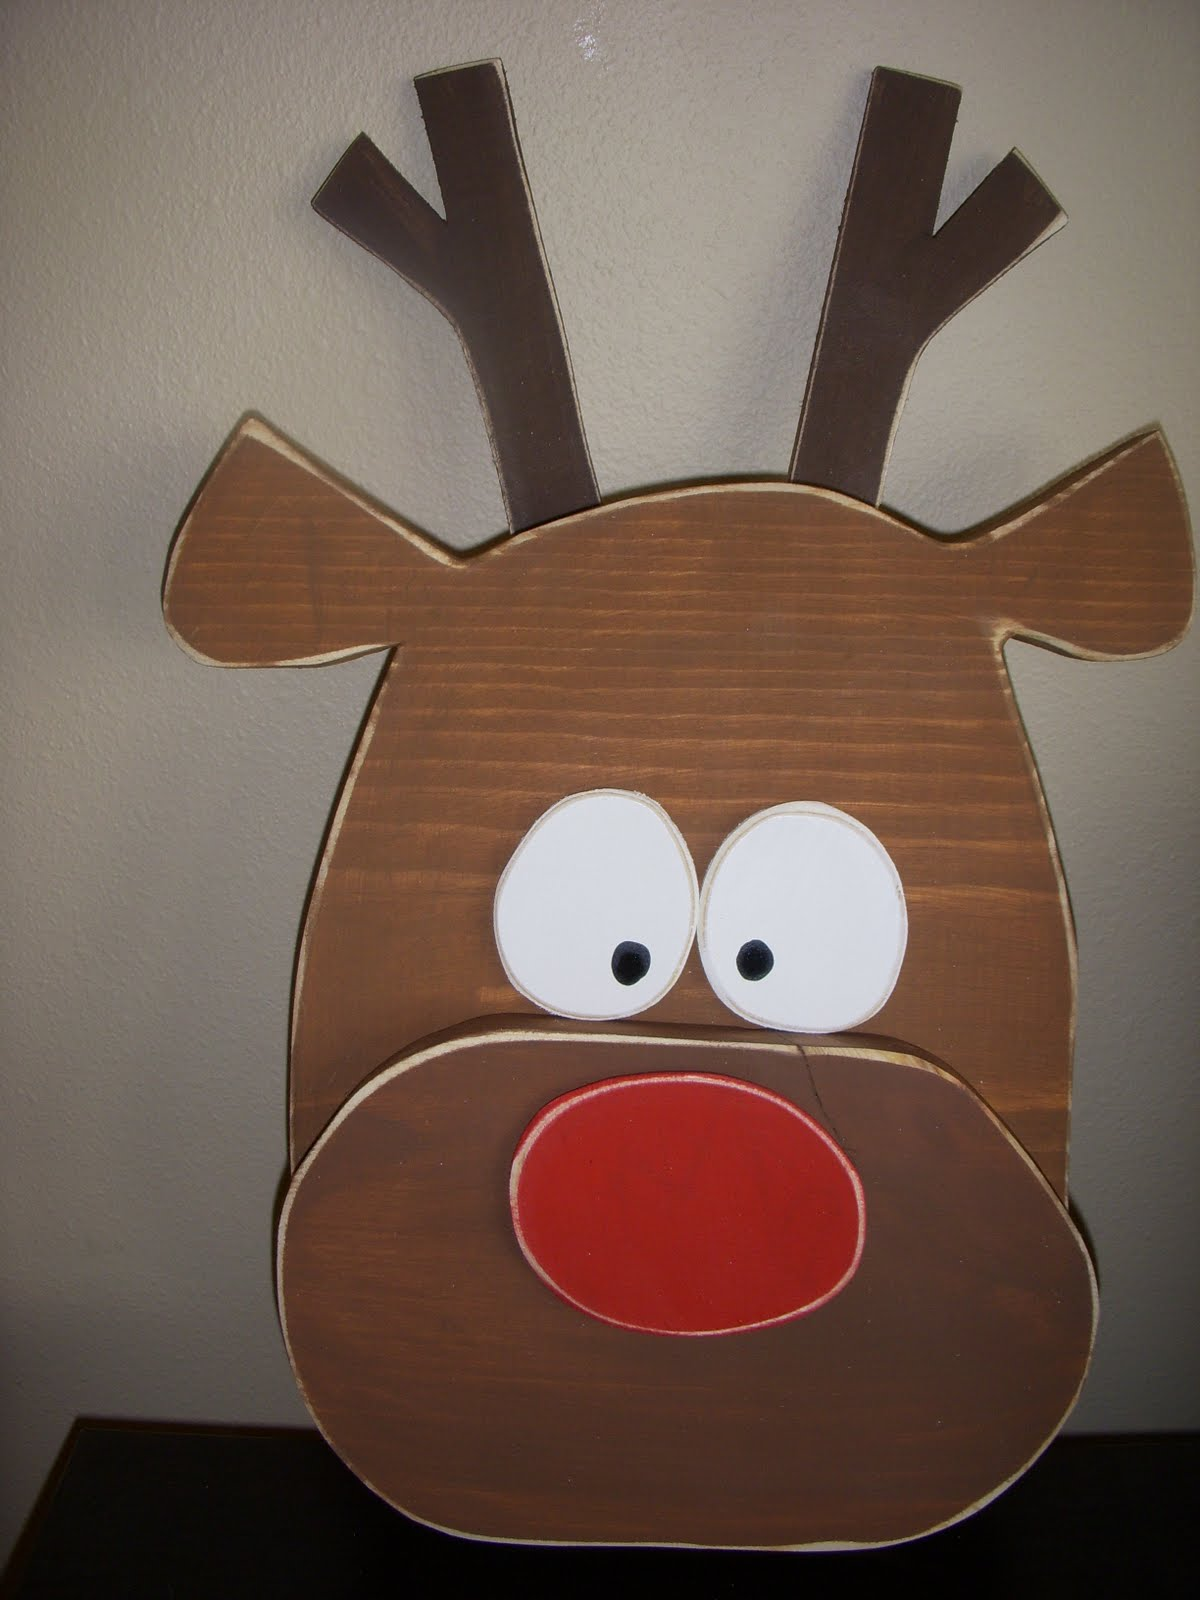 Cheeky bandit crafts reindeer for Reindeer project